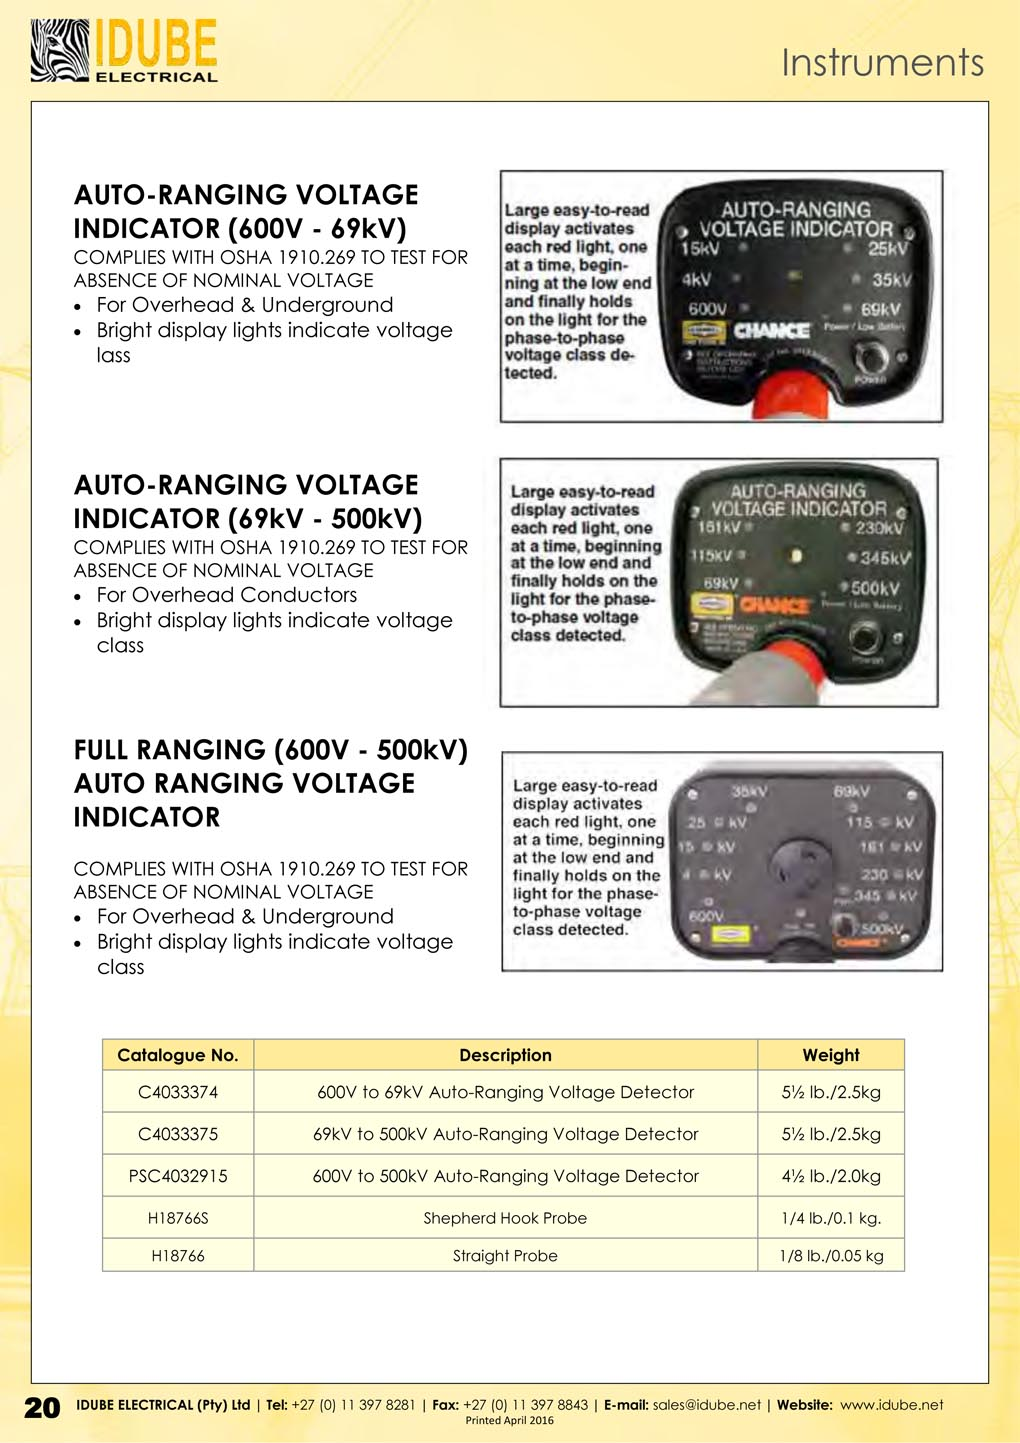 CHANCE Auto Ranging Voltage Meters - 1020 x 1443